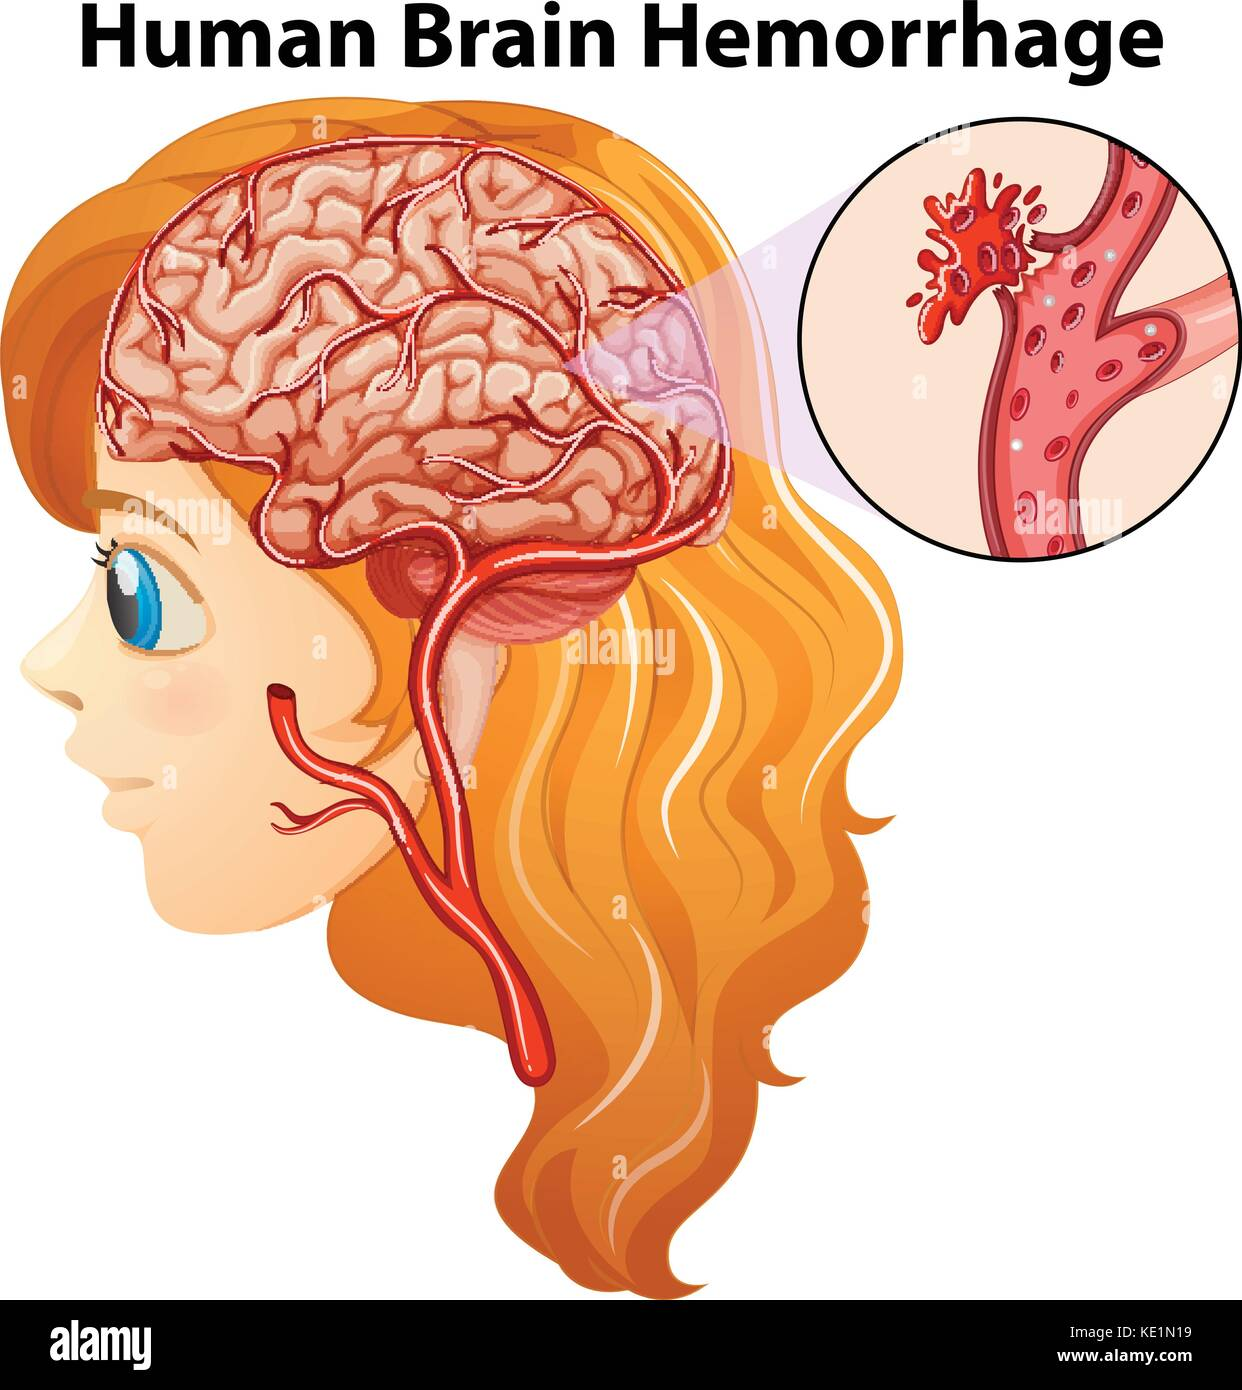 Diagram showing human brain hemorrhage illustration stock vector art diagram showing human brain hemorrhage illustration ccuart Choice Image